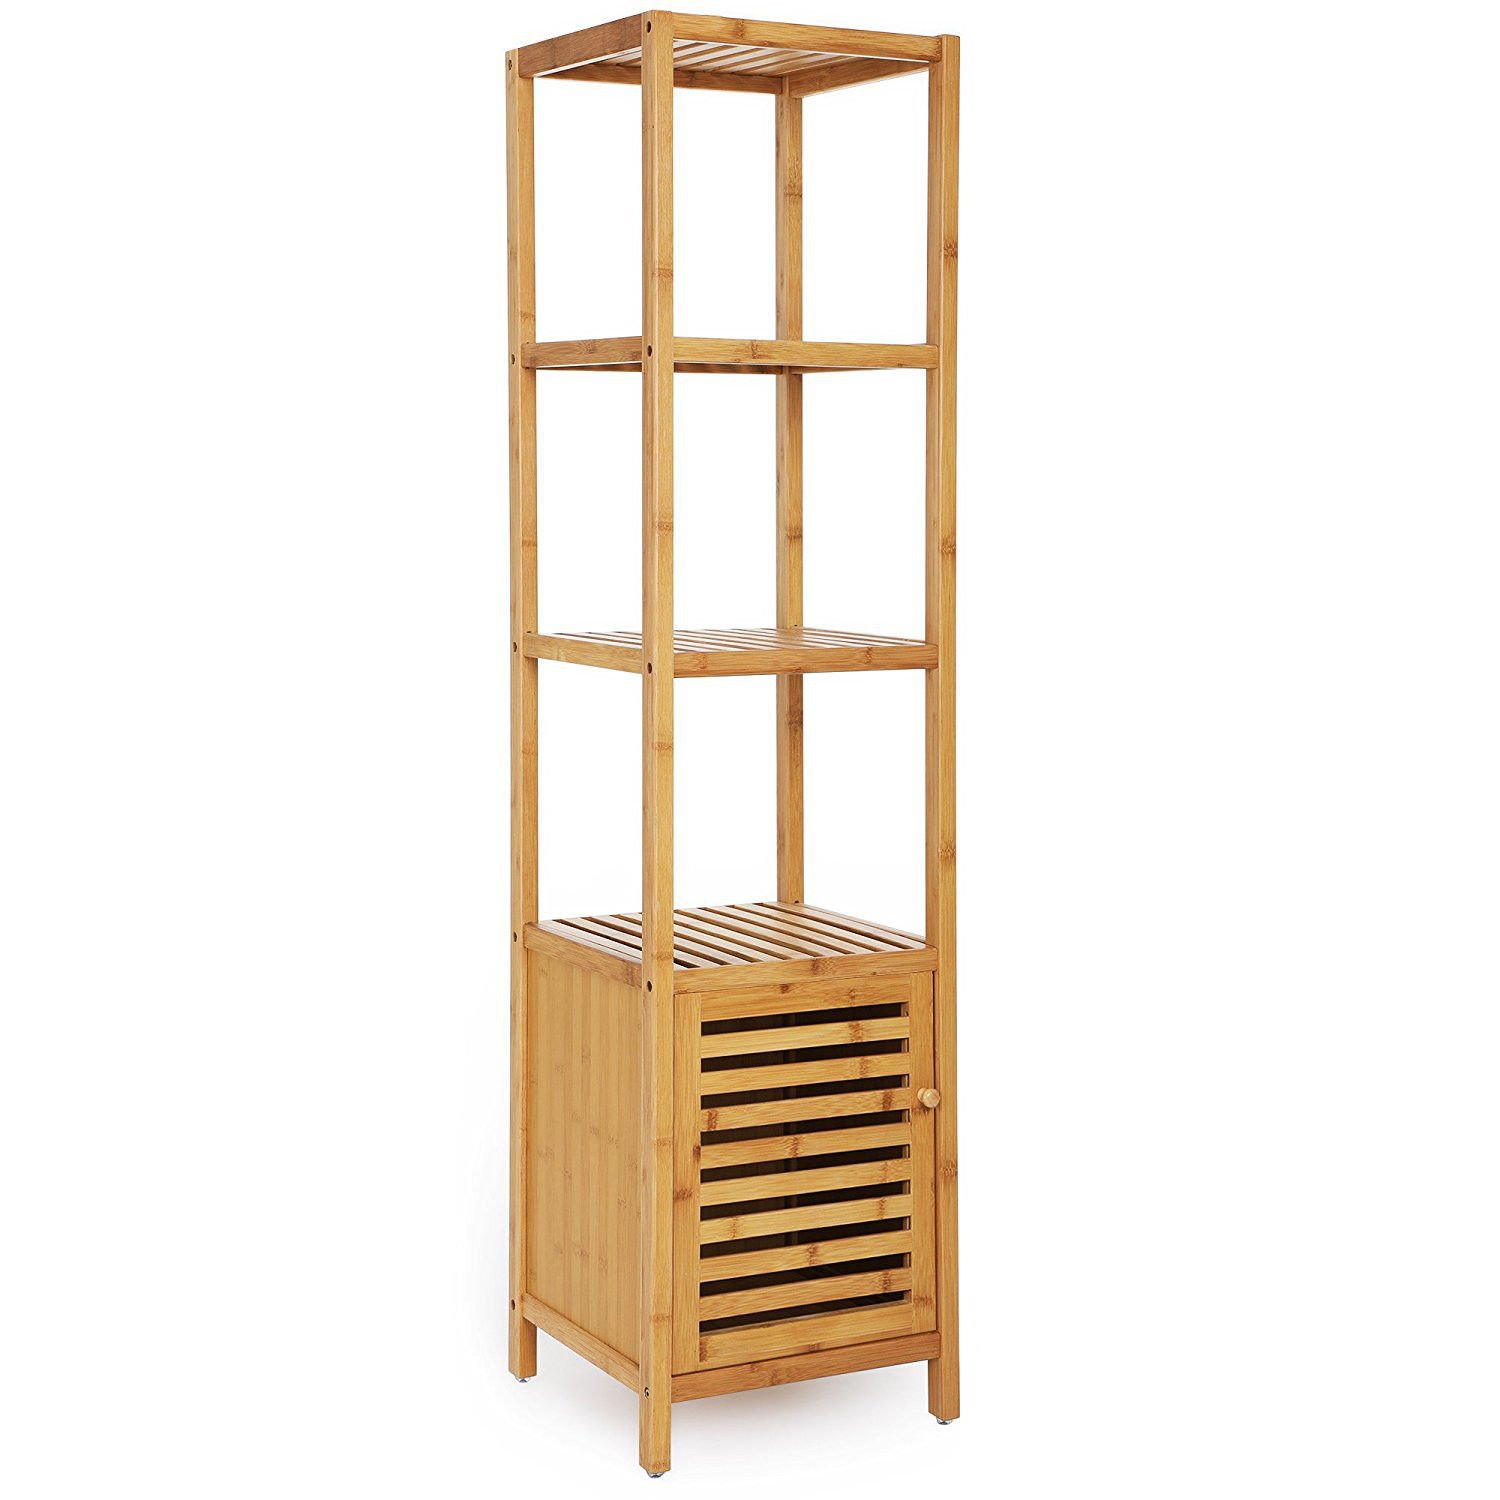 Moon daughter Bamboo Bathroom Shelf 5-Tier Multi-functional Storage Rack Shelving Unit w/ Louver Door by Moon_Daughter